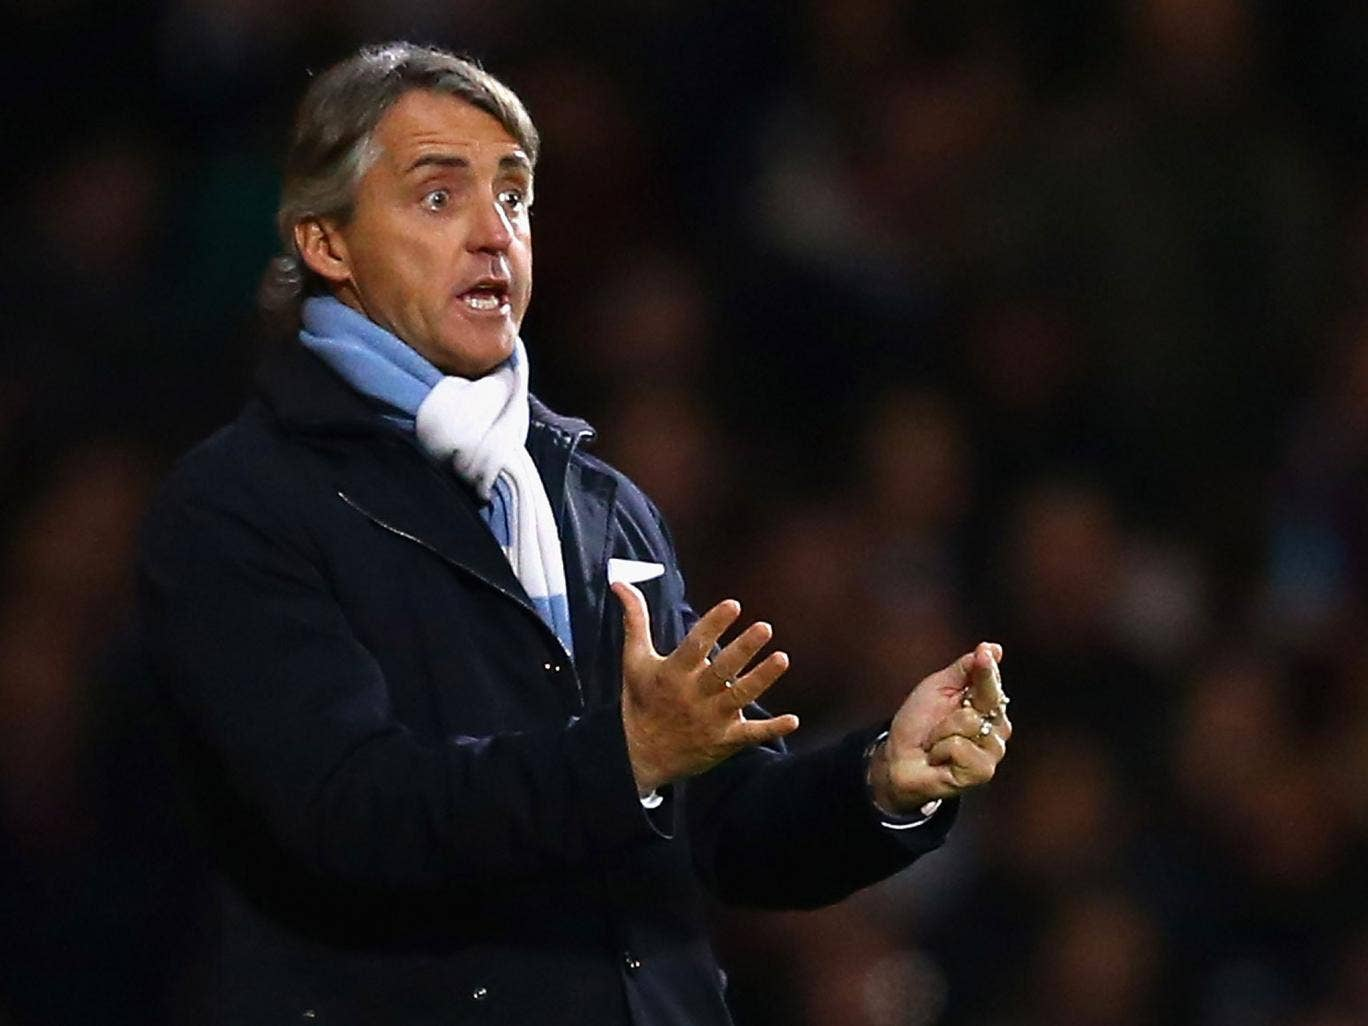 Roberto Mancini: 'At Inter, I won seven trophies in four years and they still sacked me'